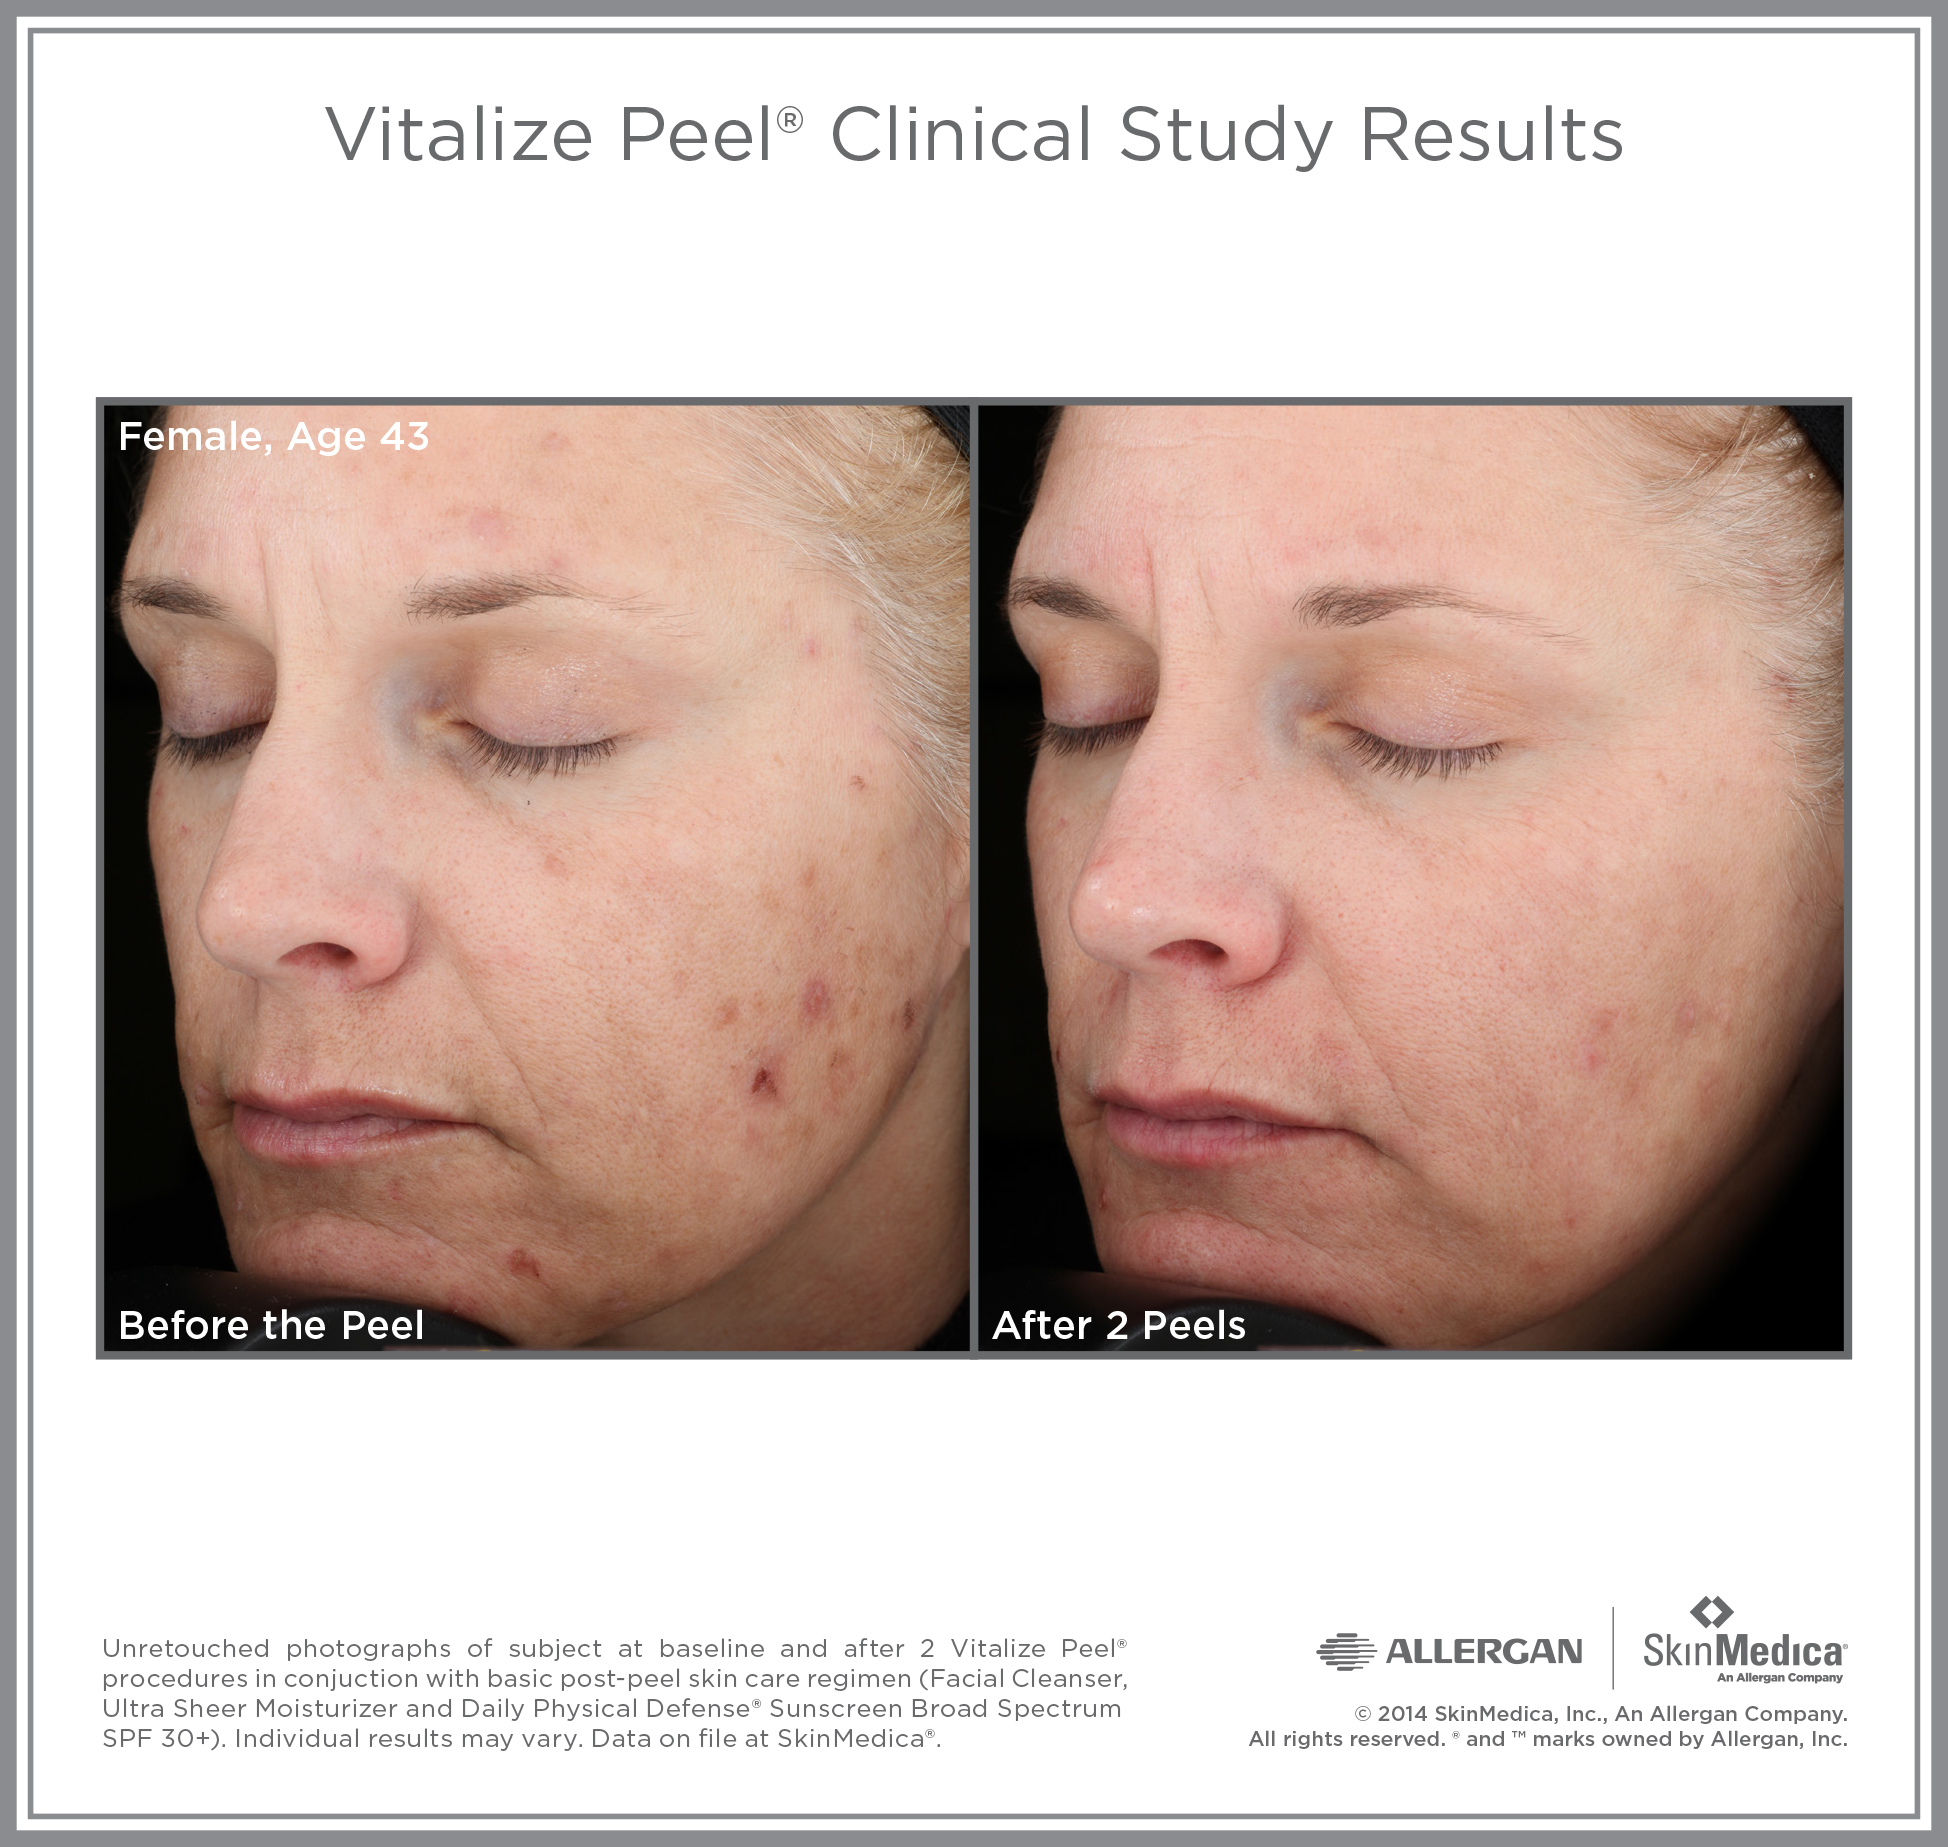 Vitalize Peel before and after